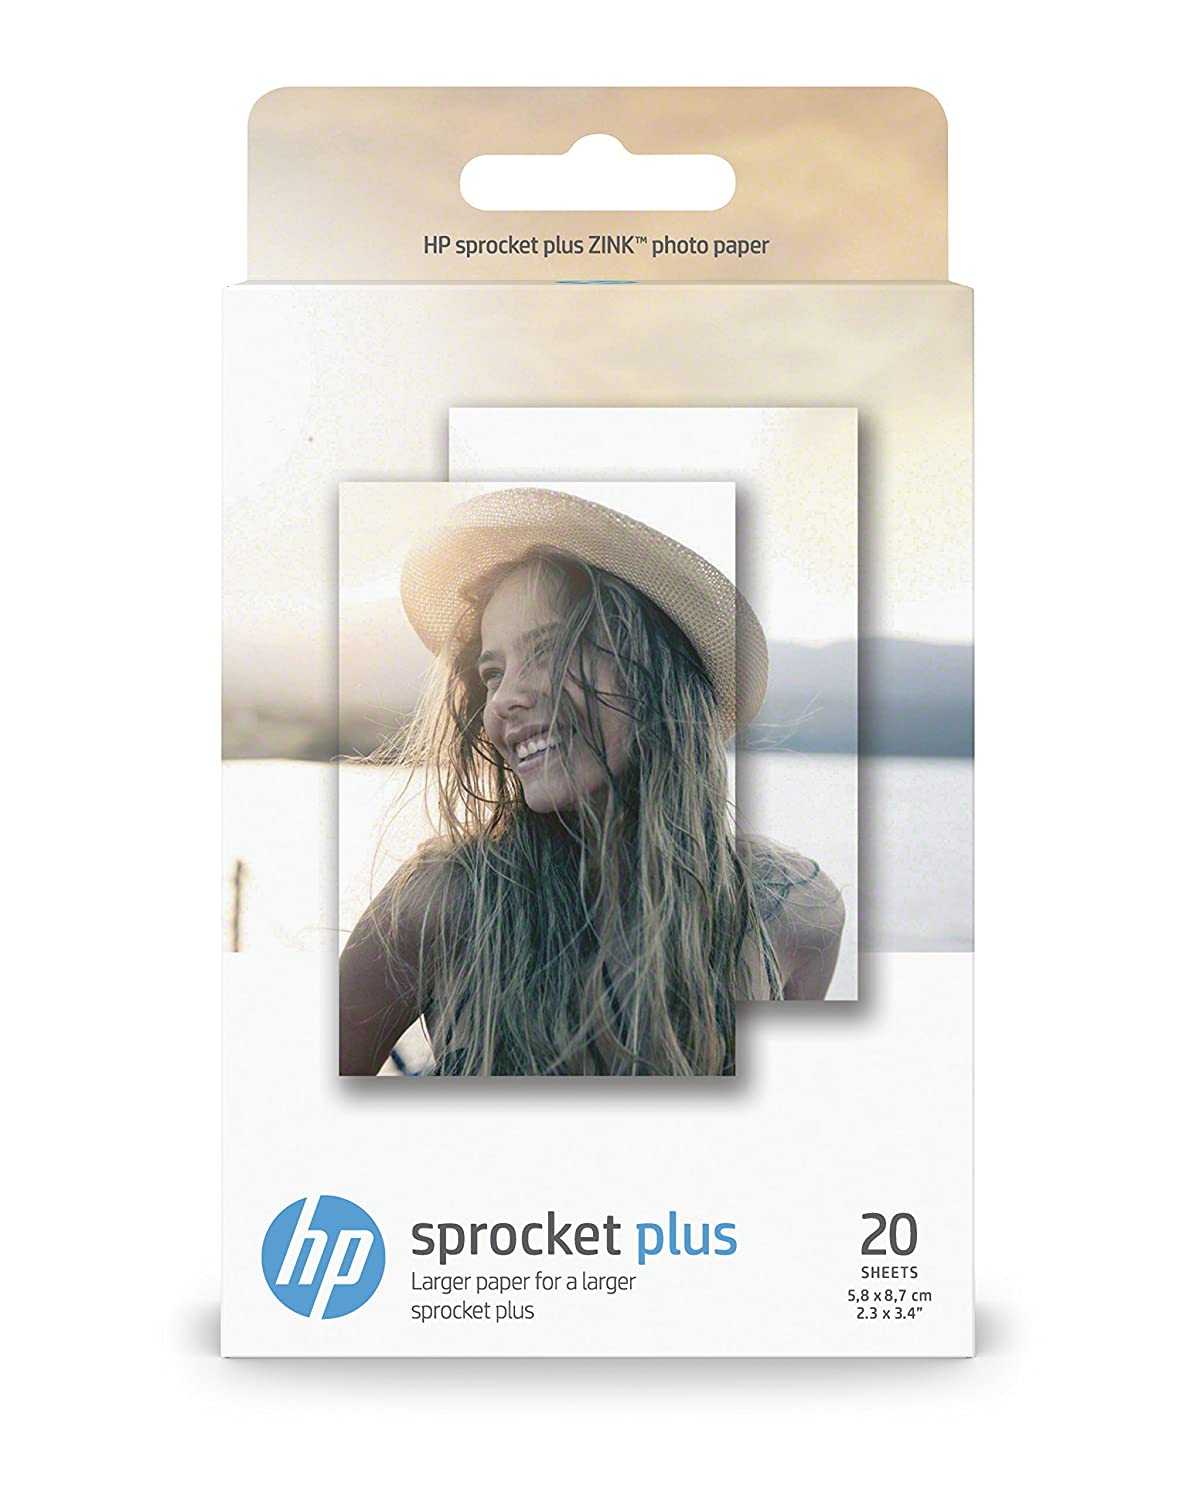 HP Zink Carta Fotografica Autoadesiva per Sprocket Plus, 5.8 x 8.7 cm Hewlett Packard 2LY72A